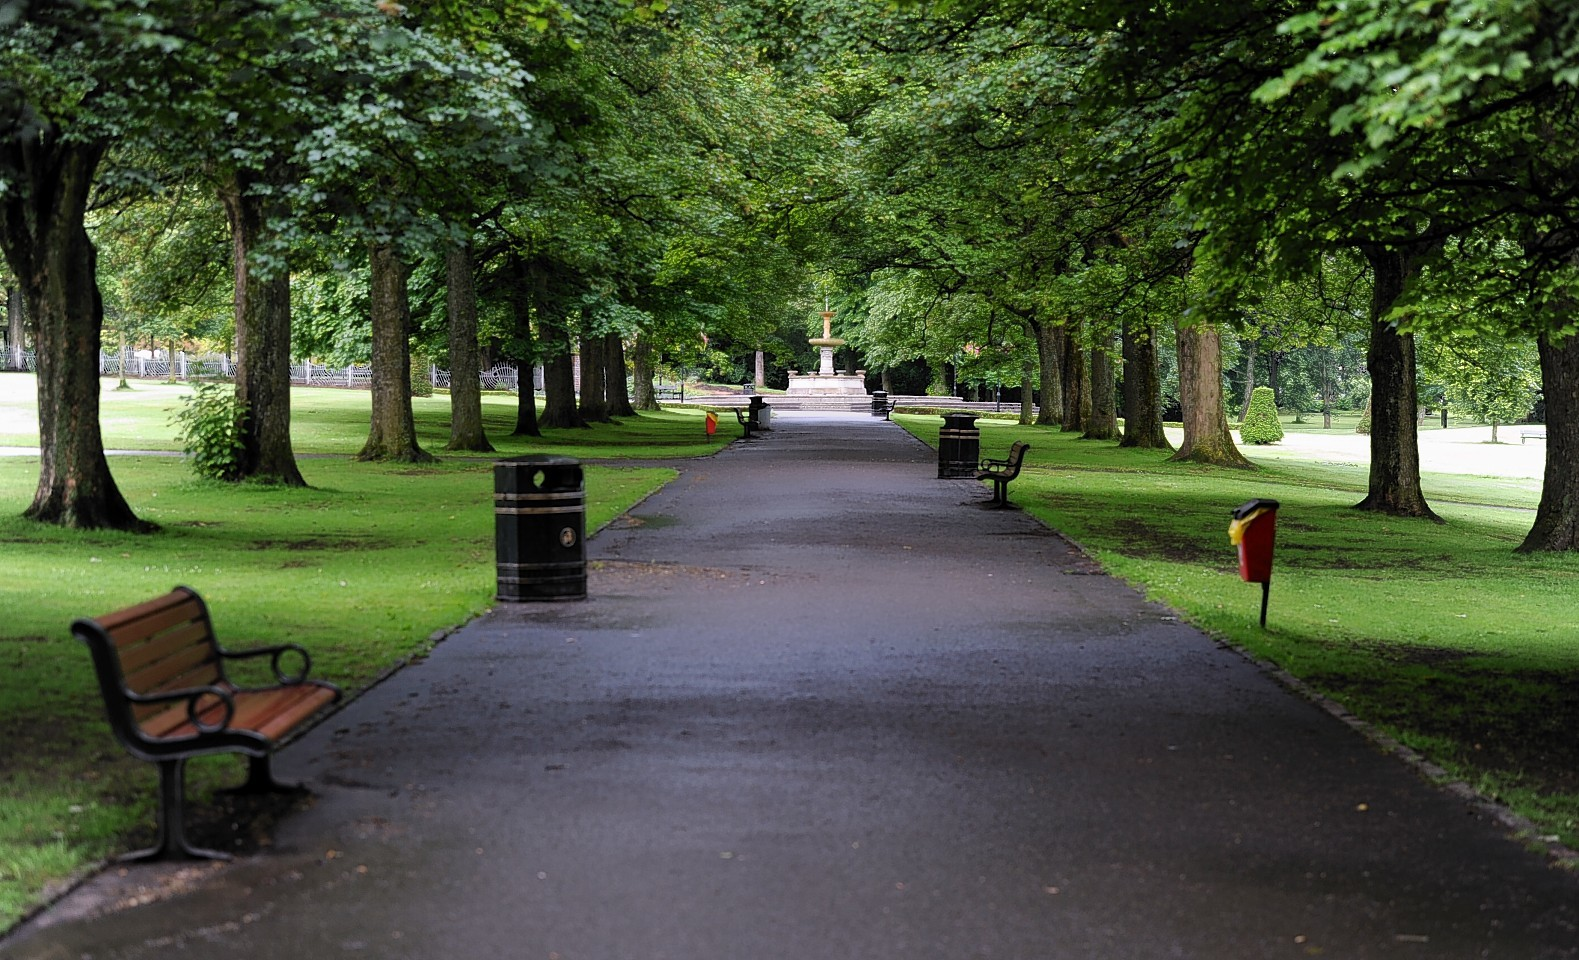 Police are appealing for information after the incident at Victoria Park, Aberdeen.